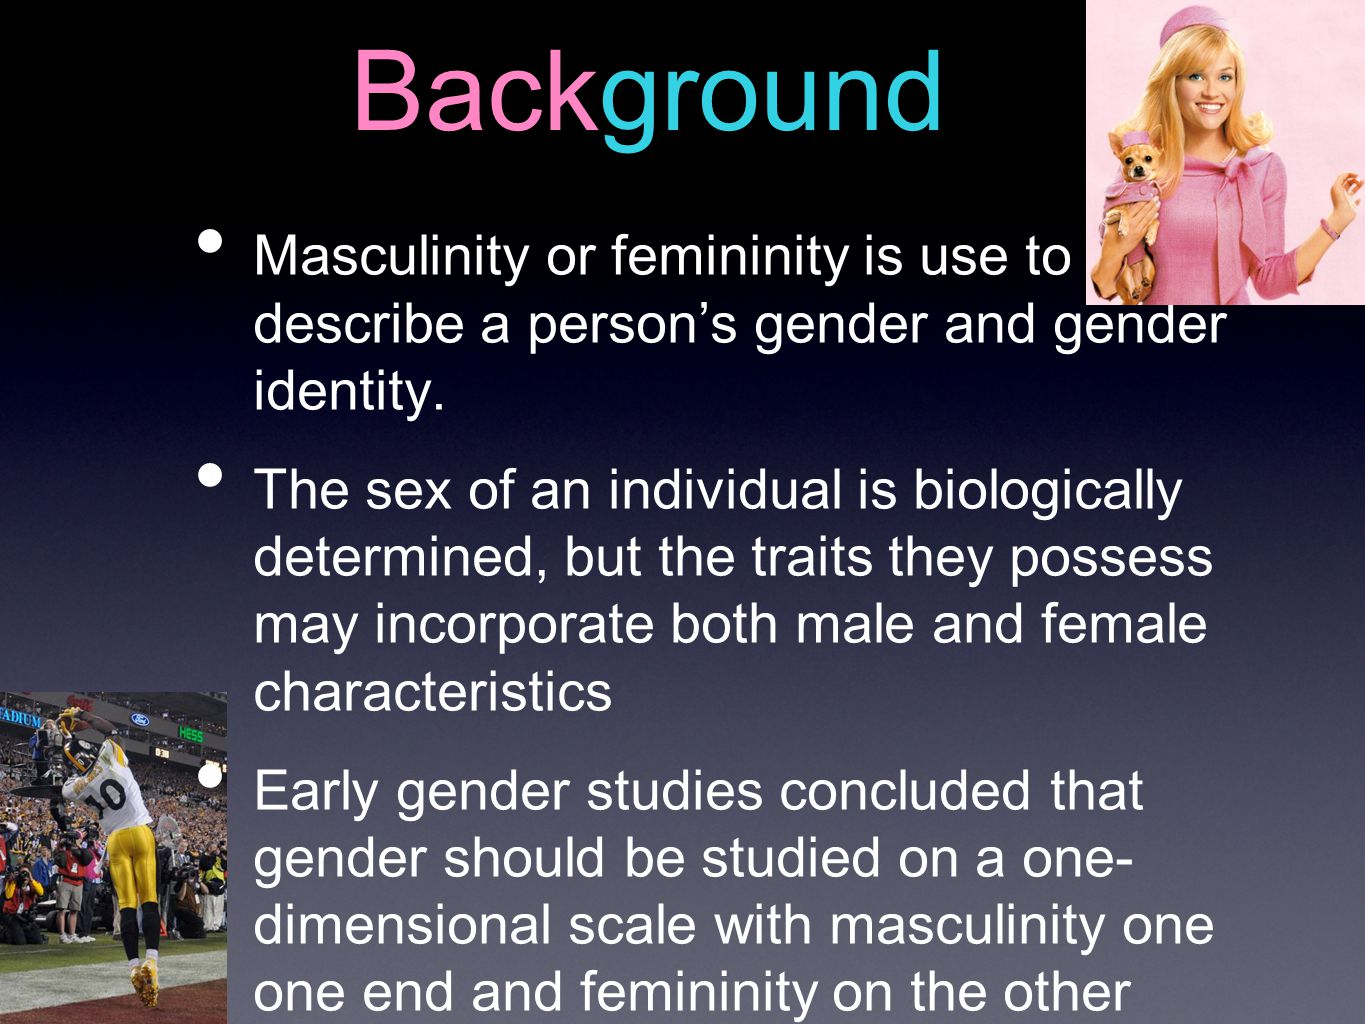 Background Masculinity or femininity is use to describe a person's gender and gender identity.